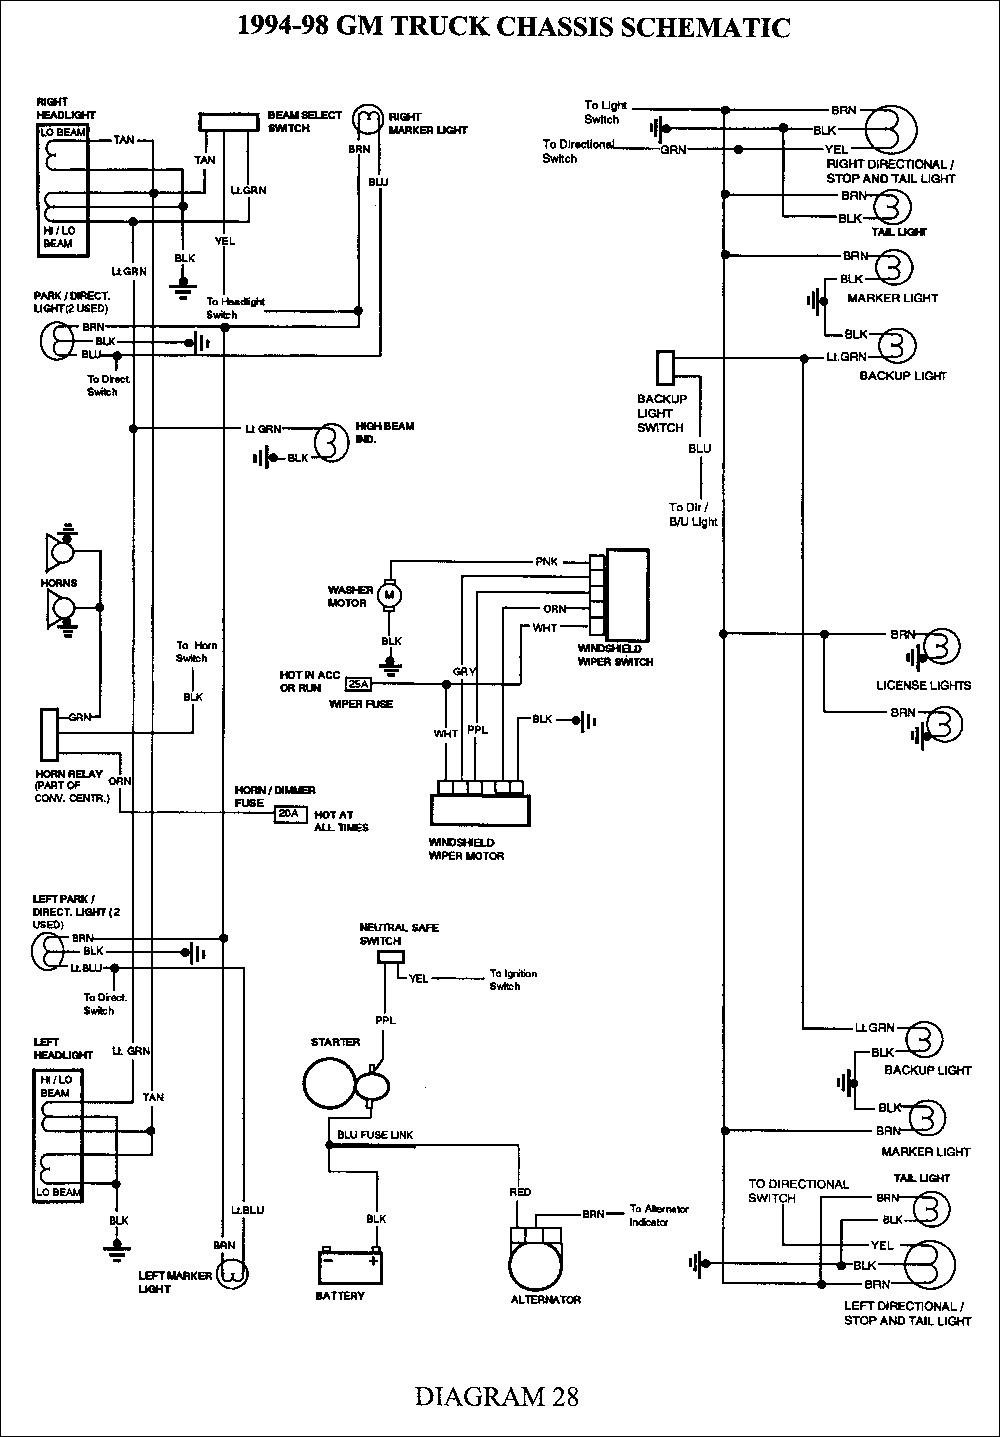 c5500 wiring diagram electrical schematics diagram rh culturetearoom com  2005 gmc c5500 wiring diagram 2007 gmc